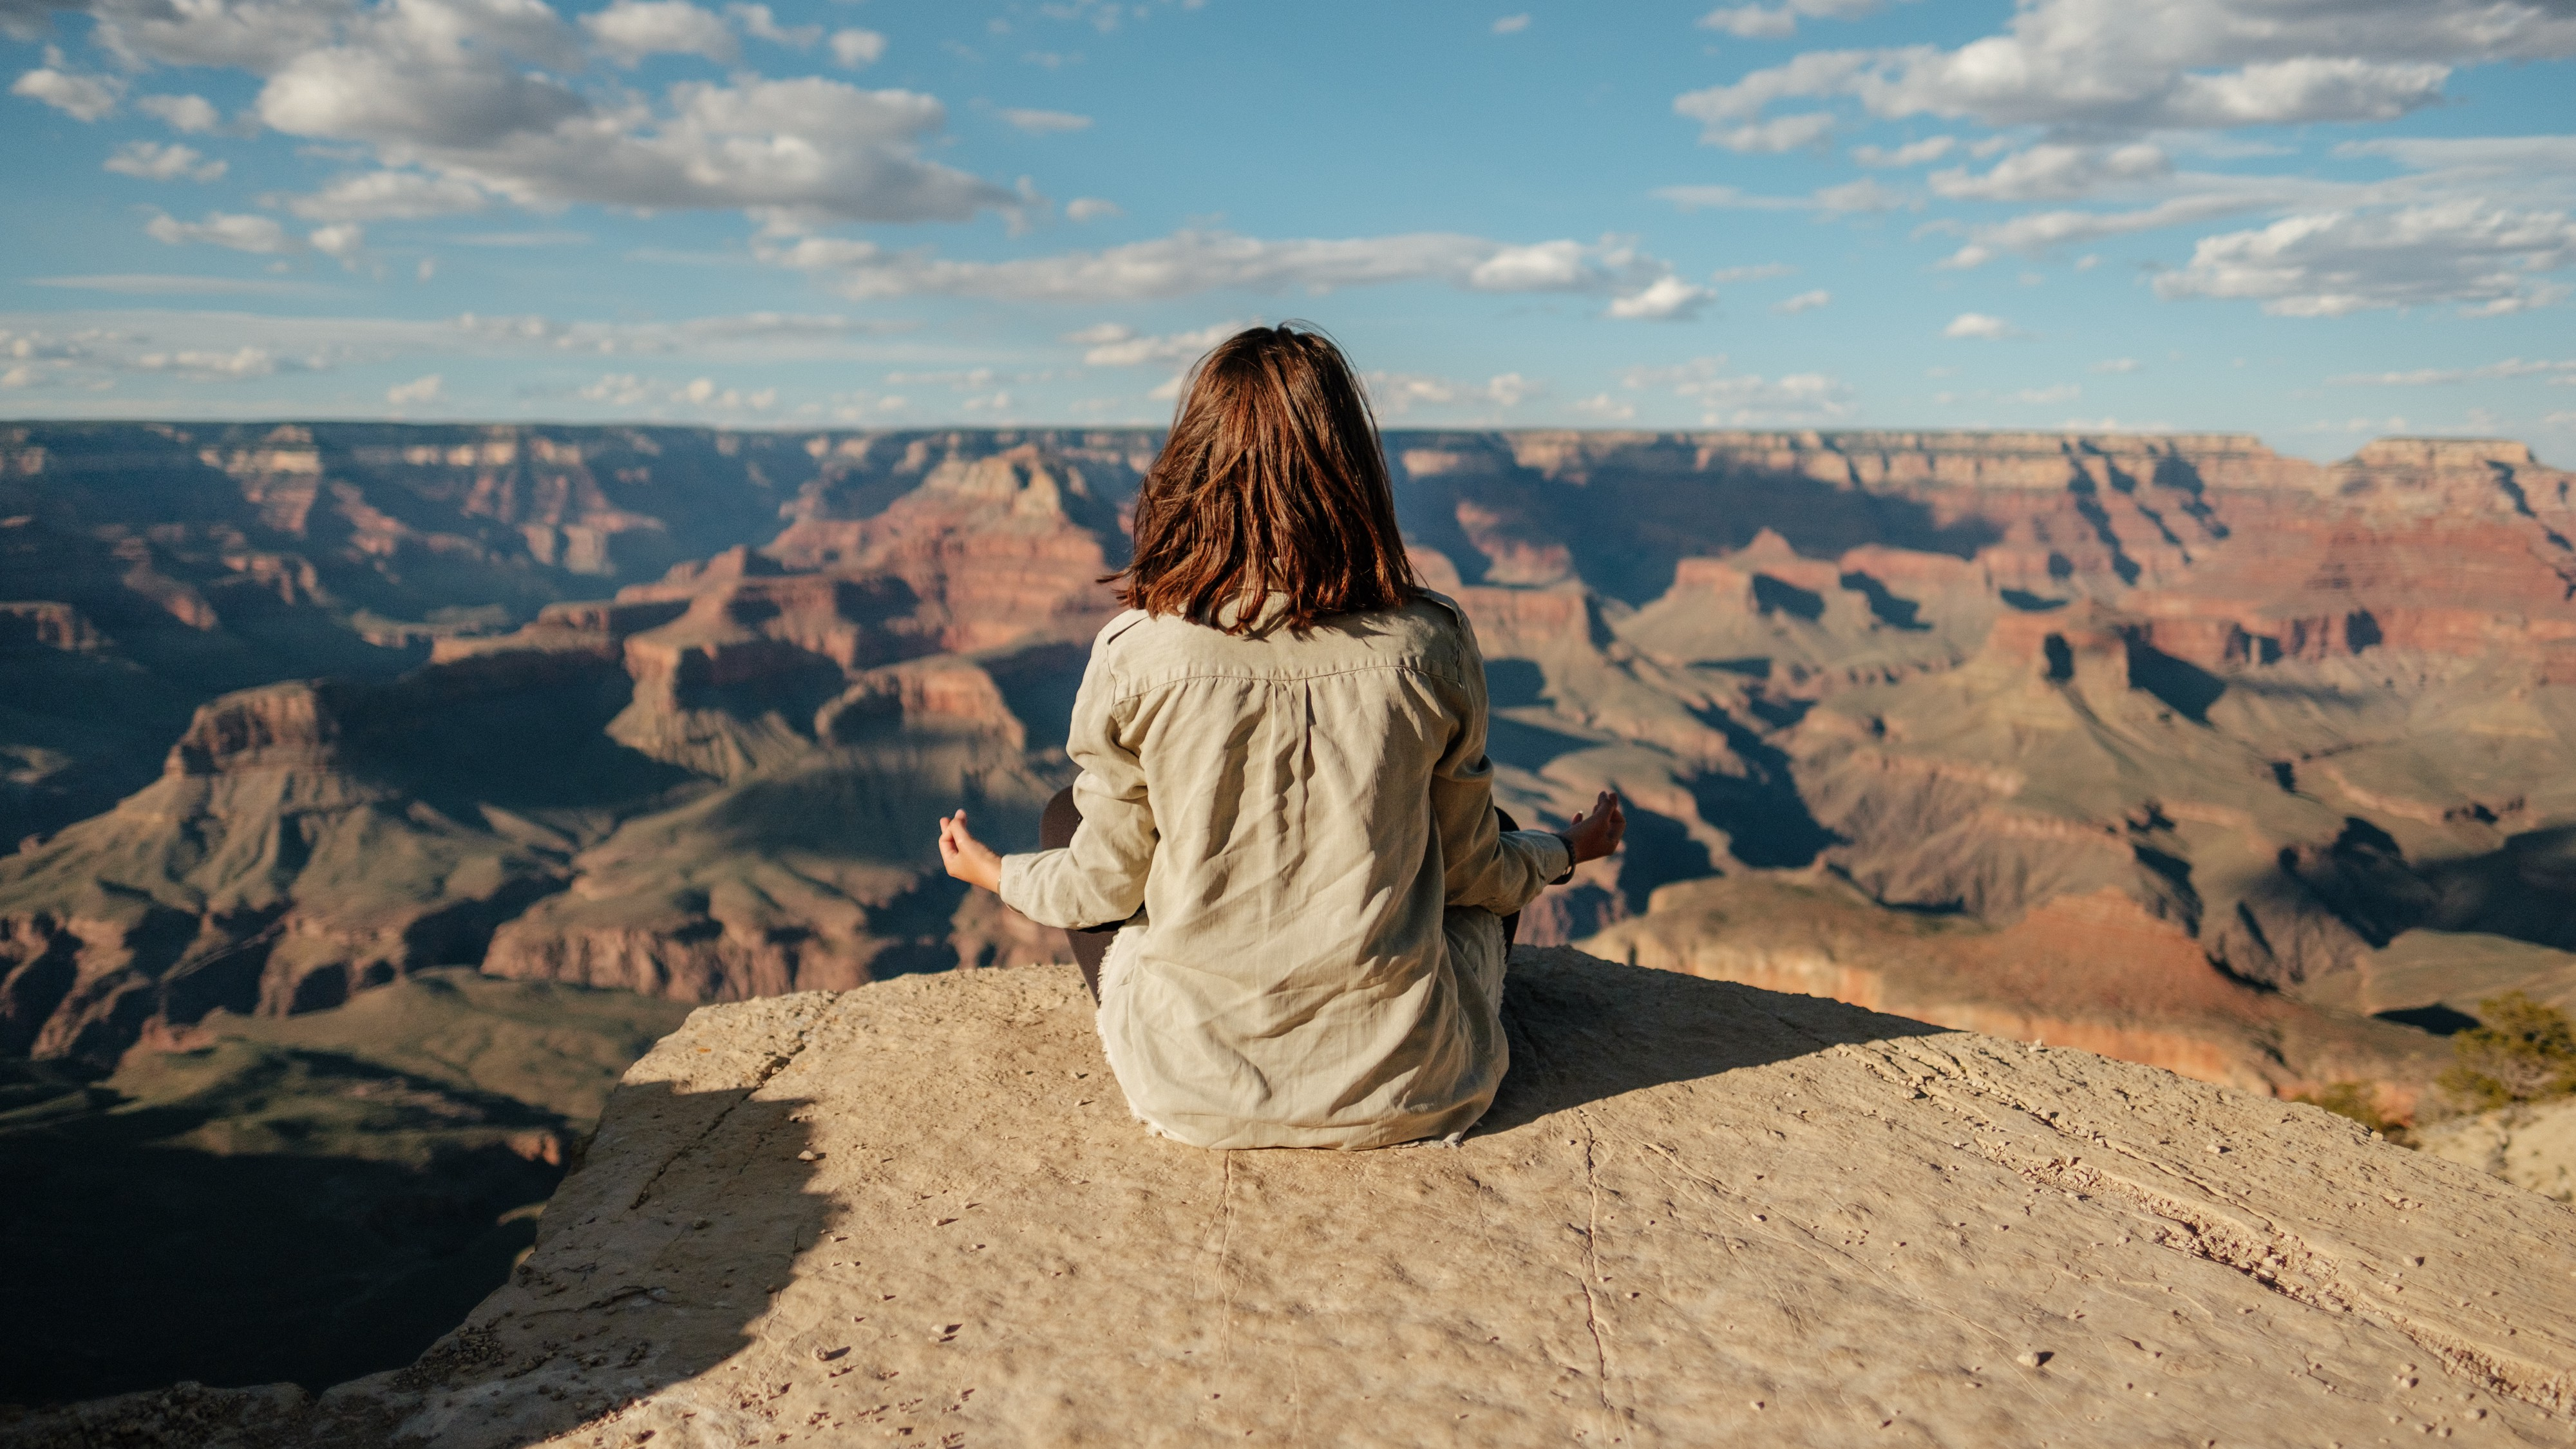 Girl sitting atop a rock in a meditation pose, overlooking a canyon